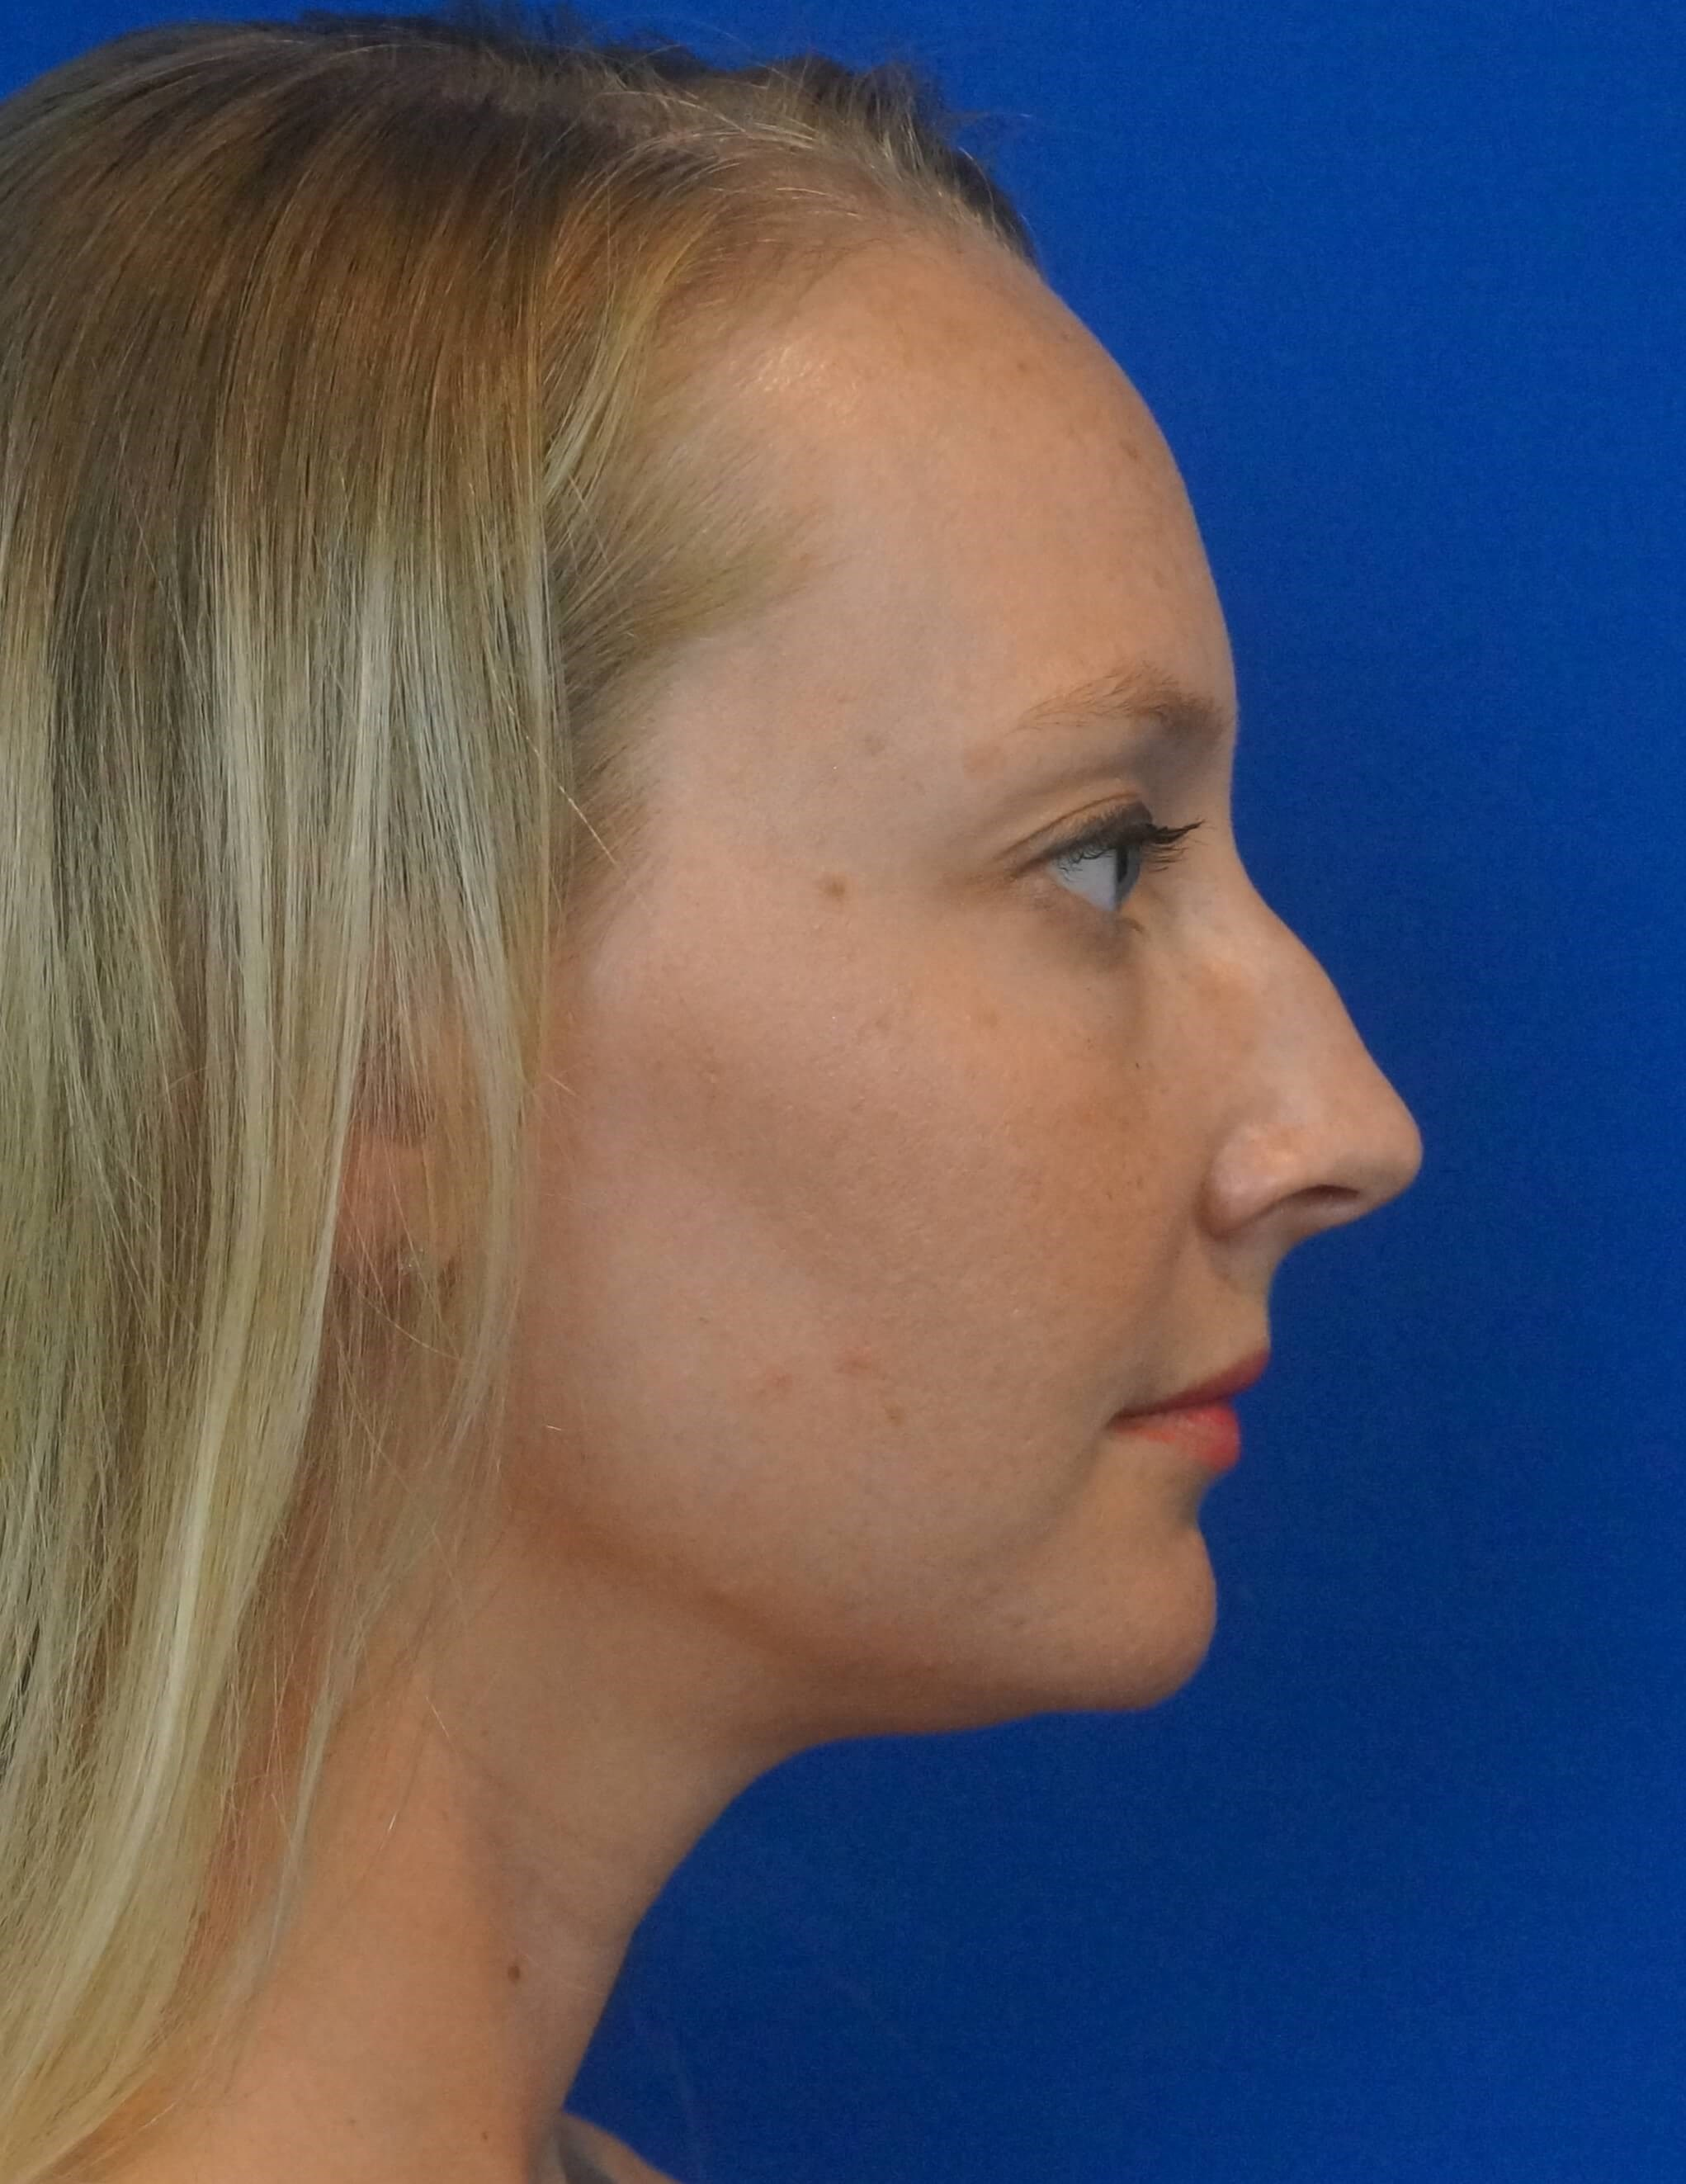 Rhinoplasty Surgeon Las Vegas Before